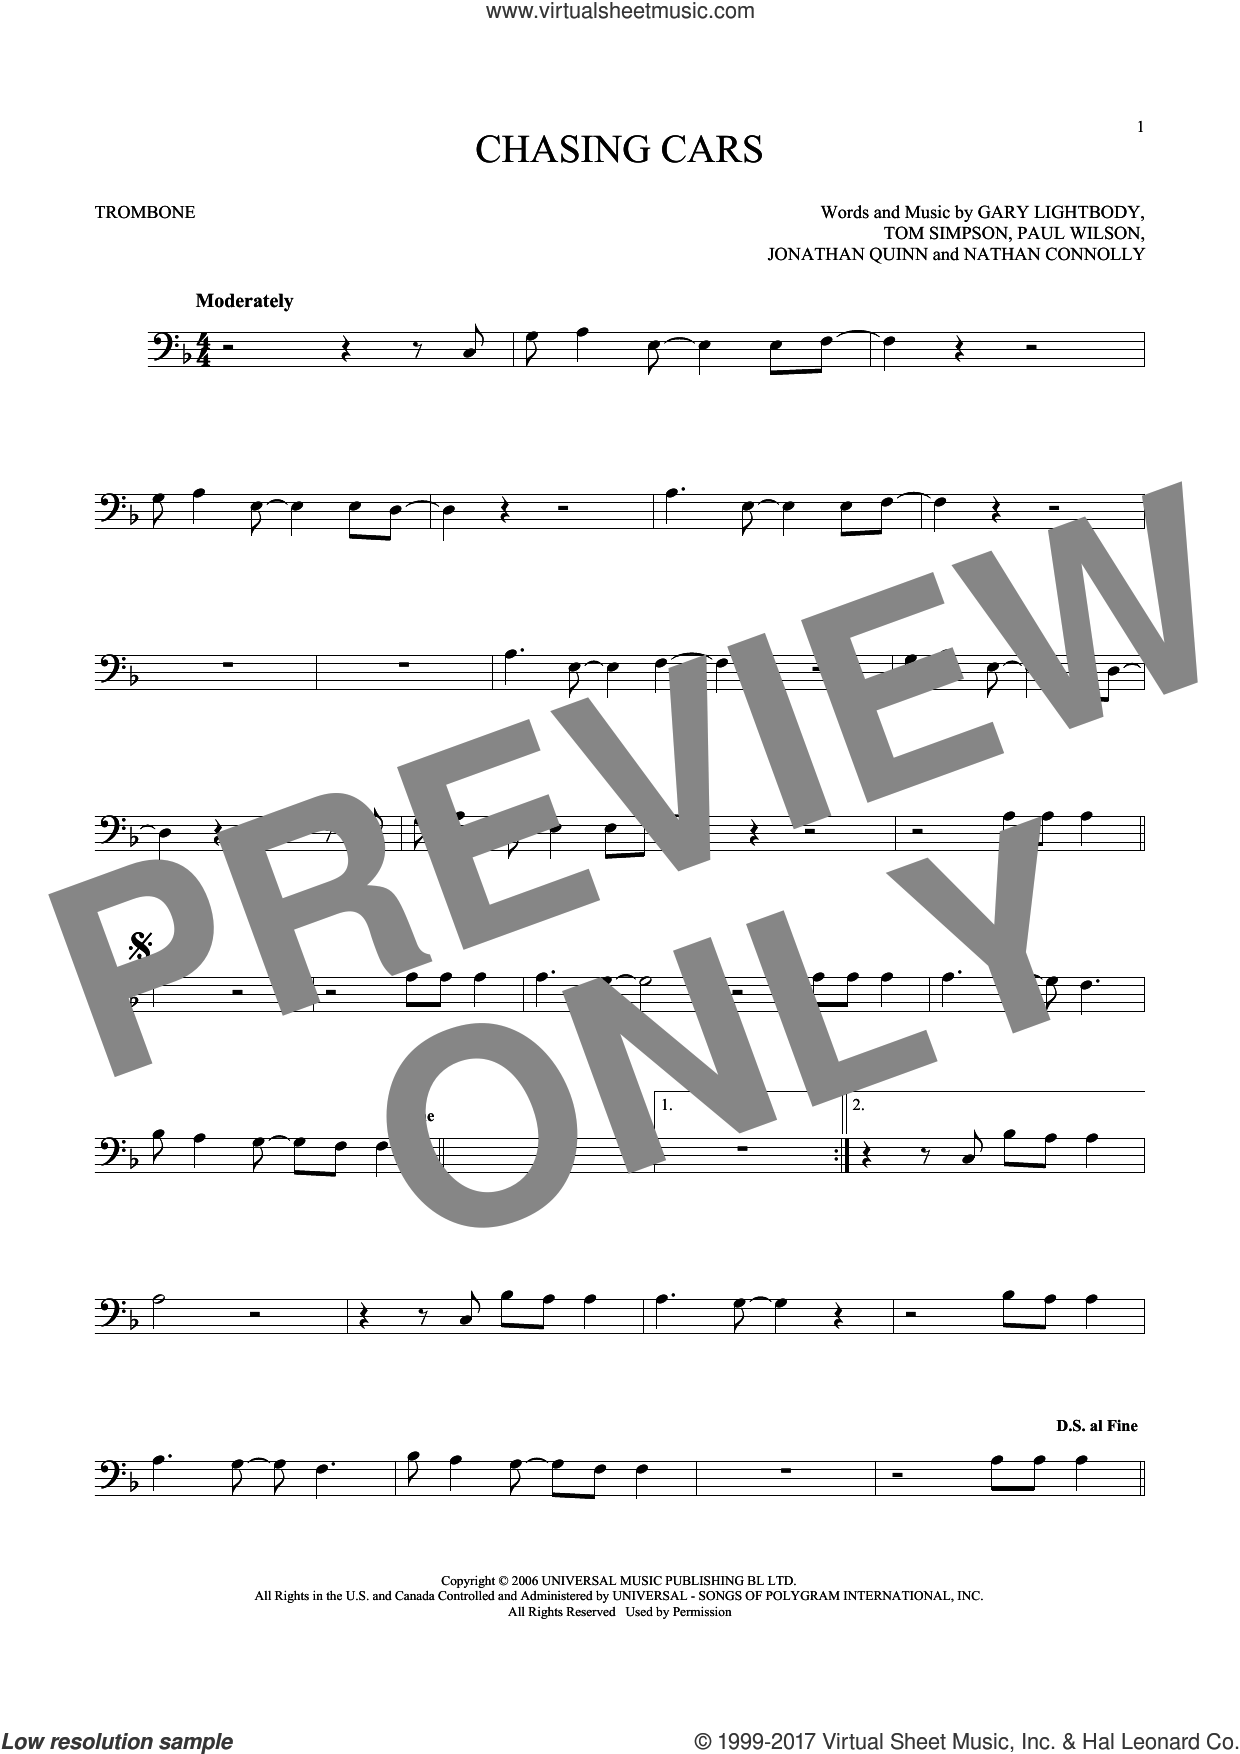 Chasing Cars sheet music for trombone solo by Tom Simpson, Snow Patrol, Gary Lightbody, Nathan Connolly and Paul Wilson. Score Image Preview.